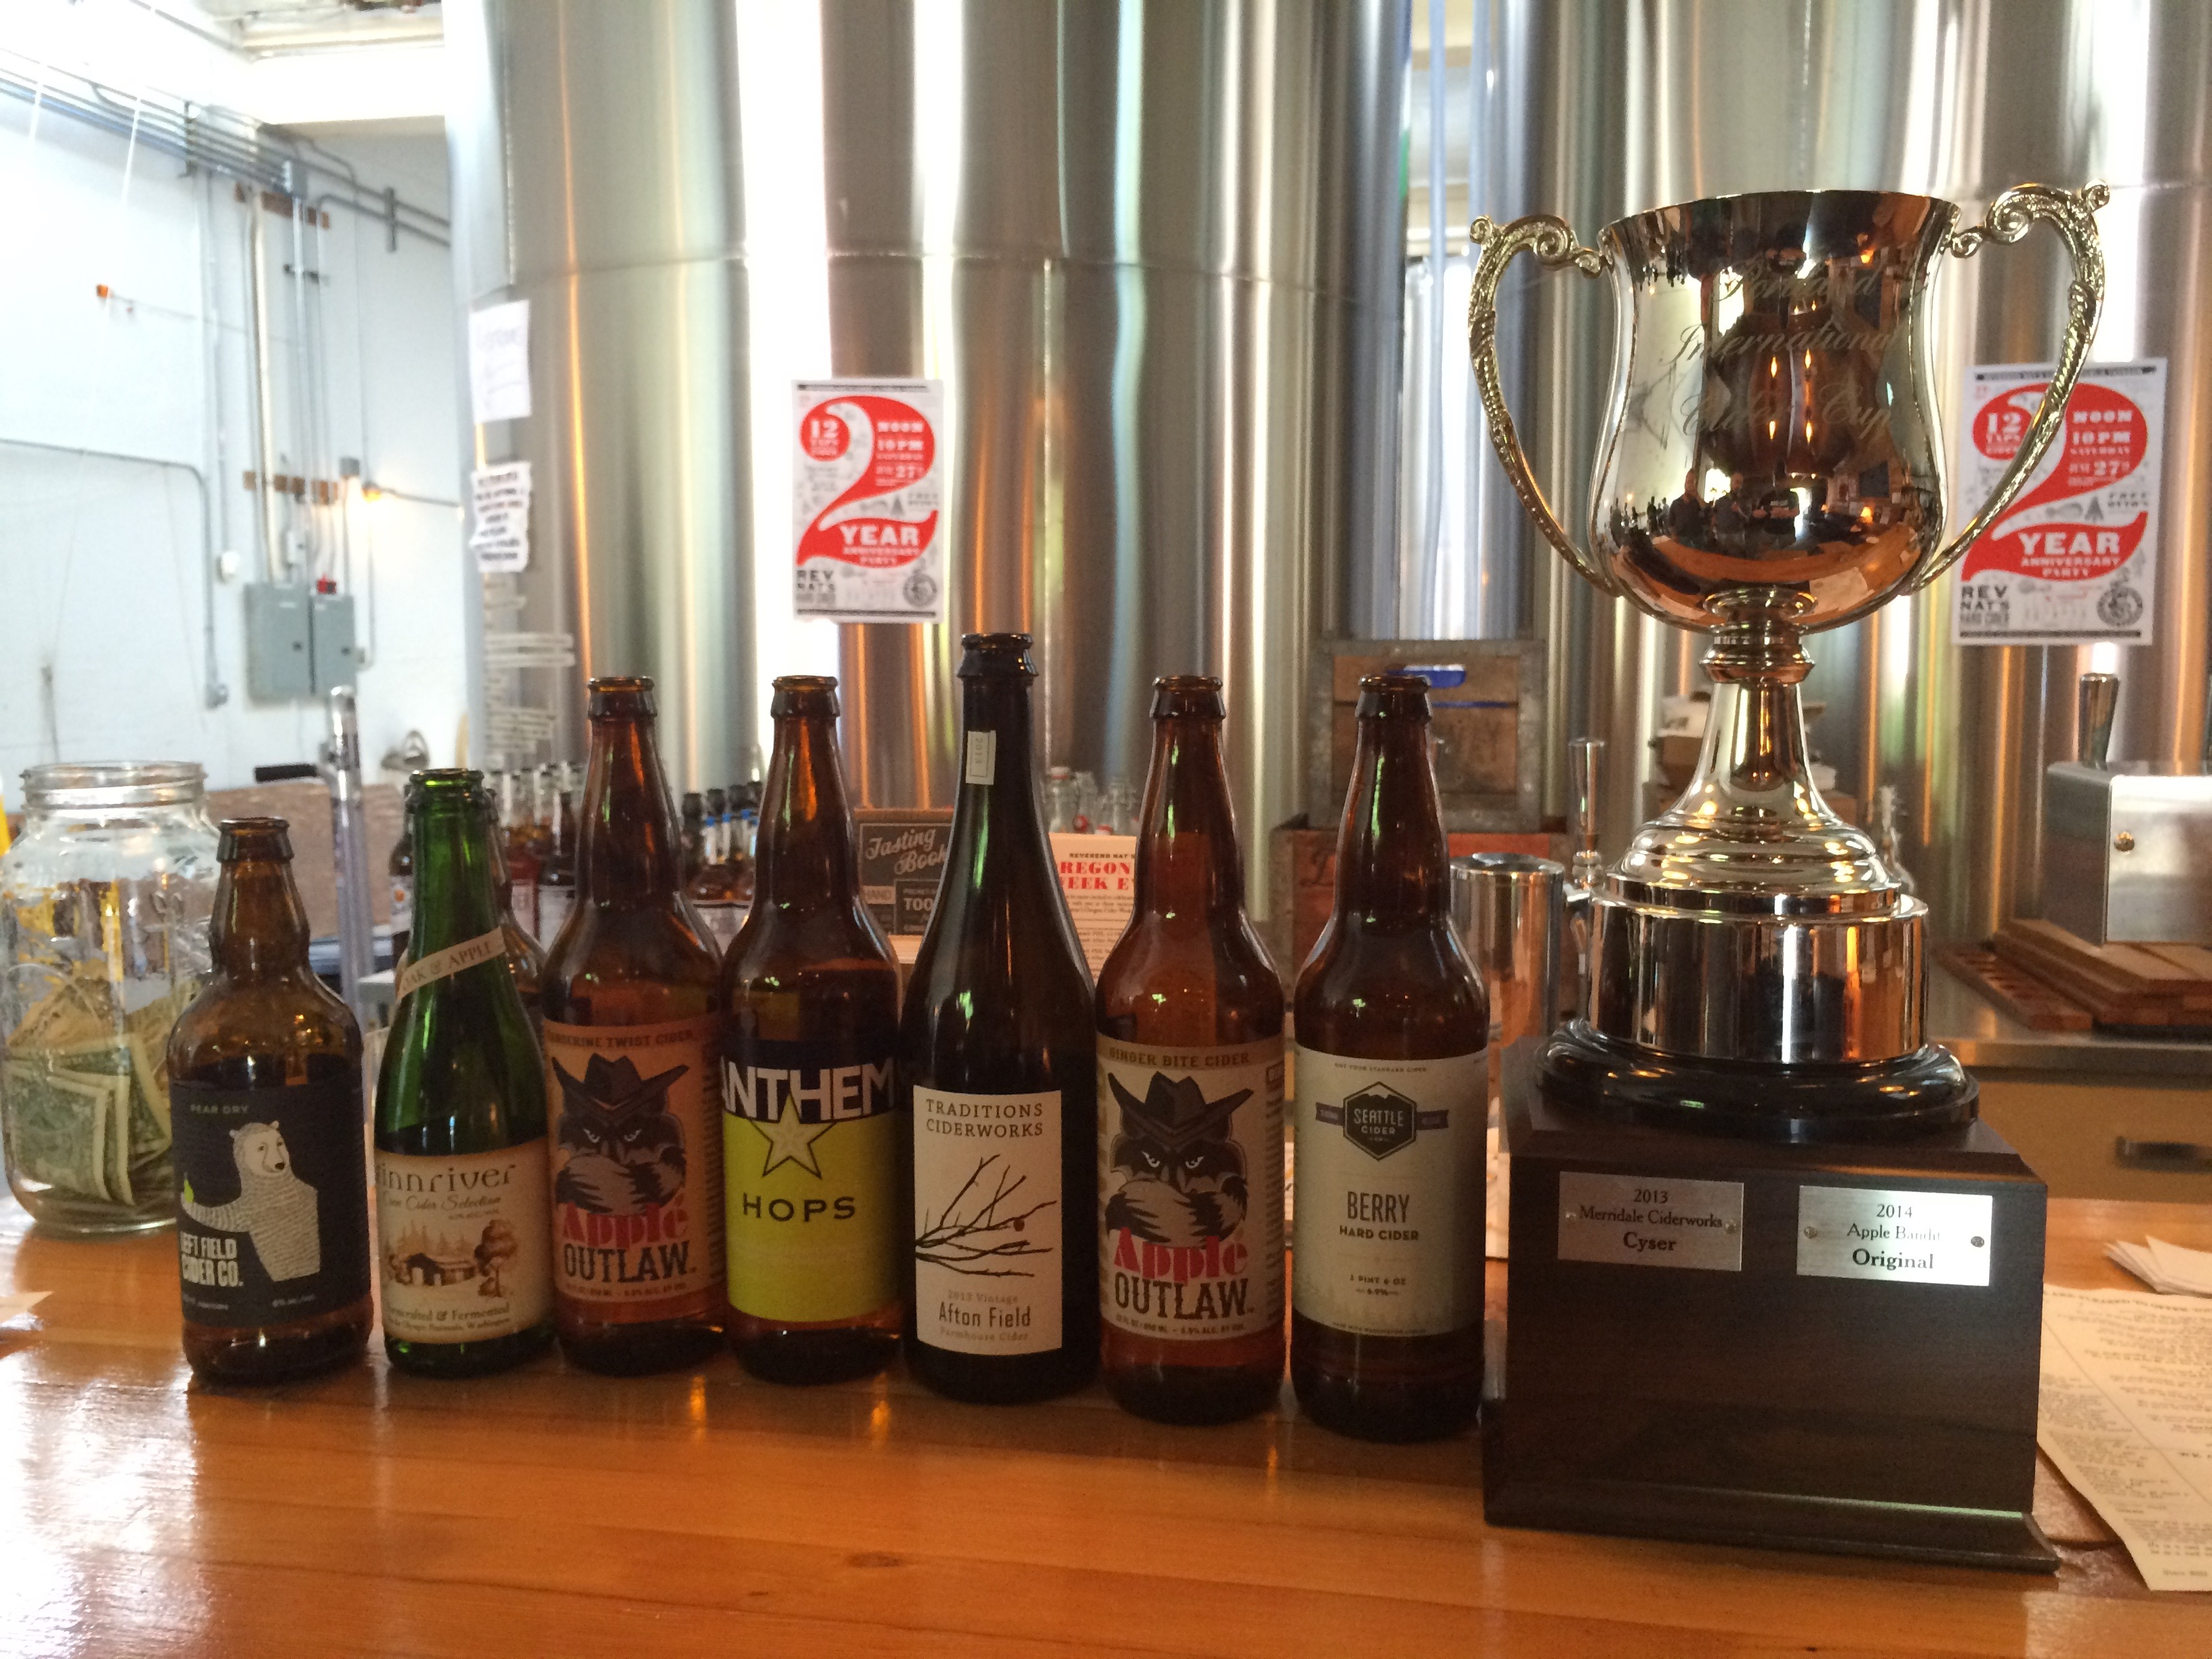 2015 Portland International Cider Cup Gold Medal Winners